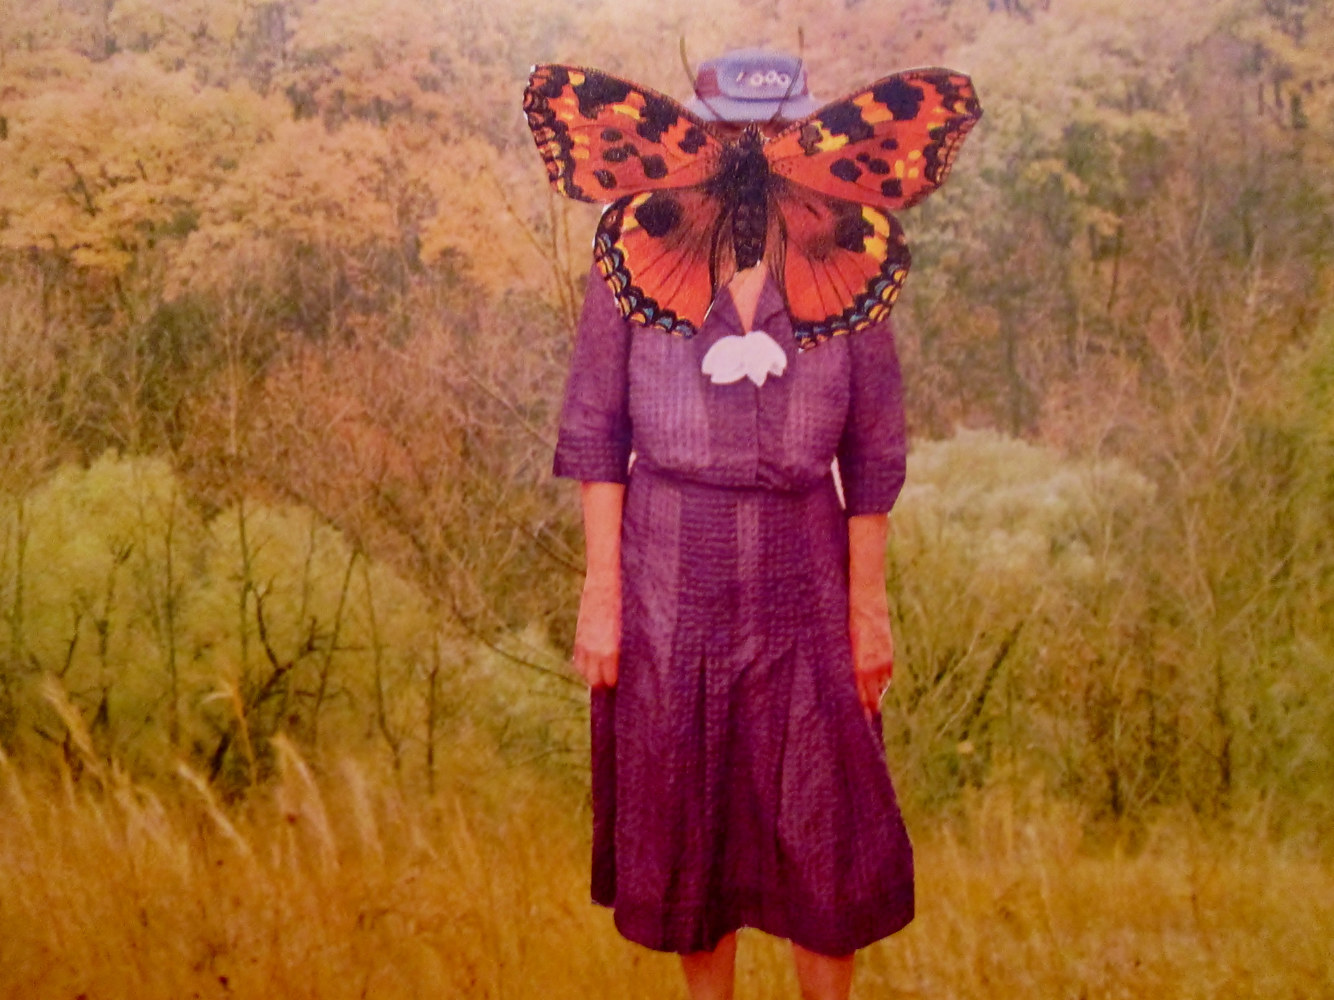 The Frumpy Butterfly Lady  by Jo Ann Tunnell Muench